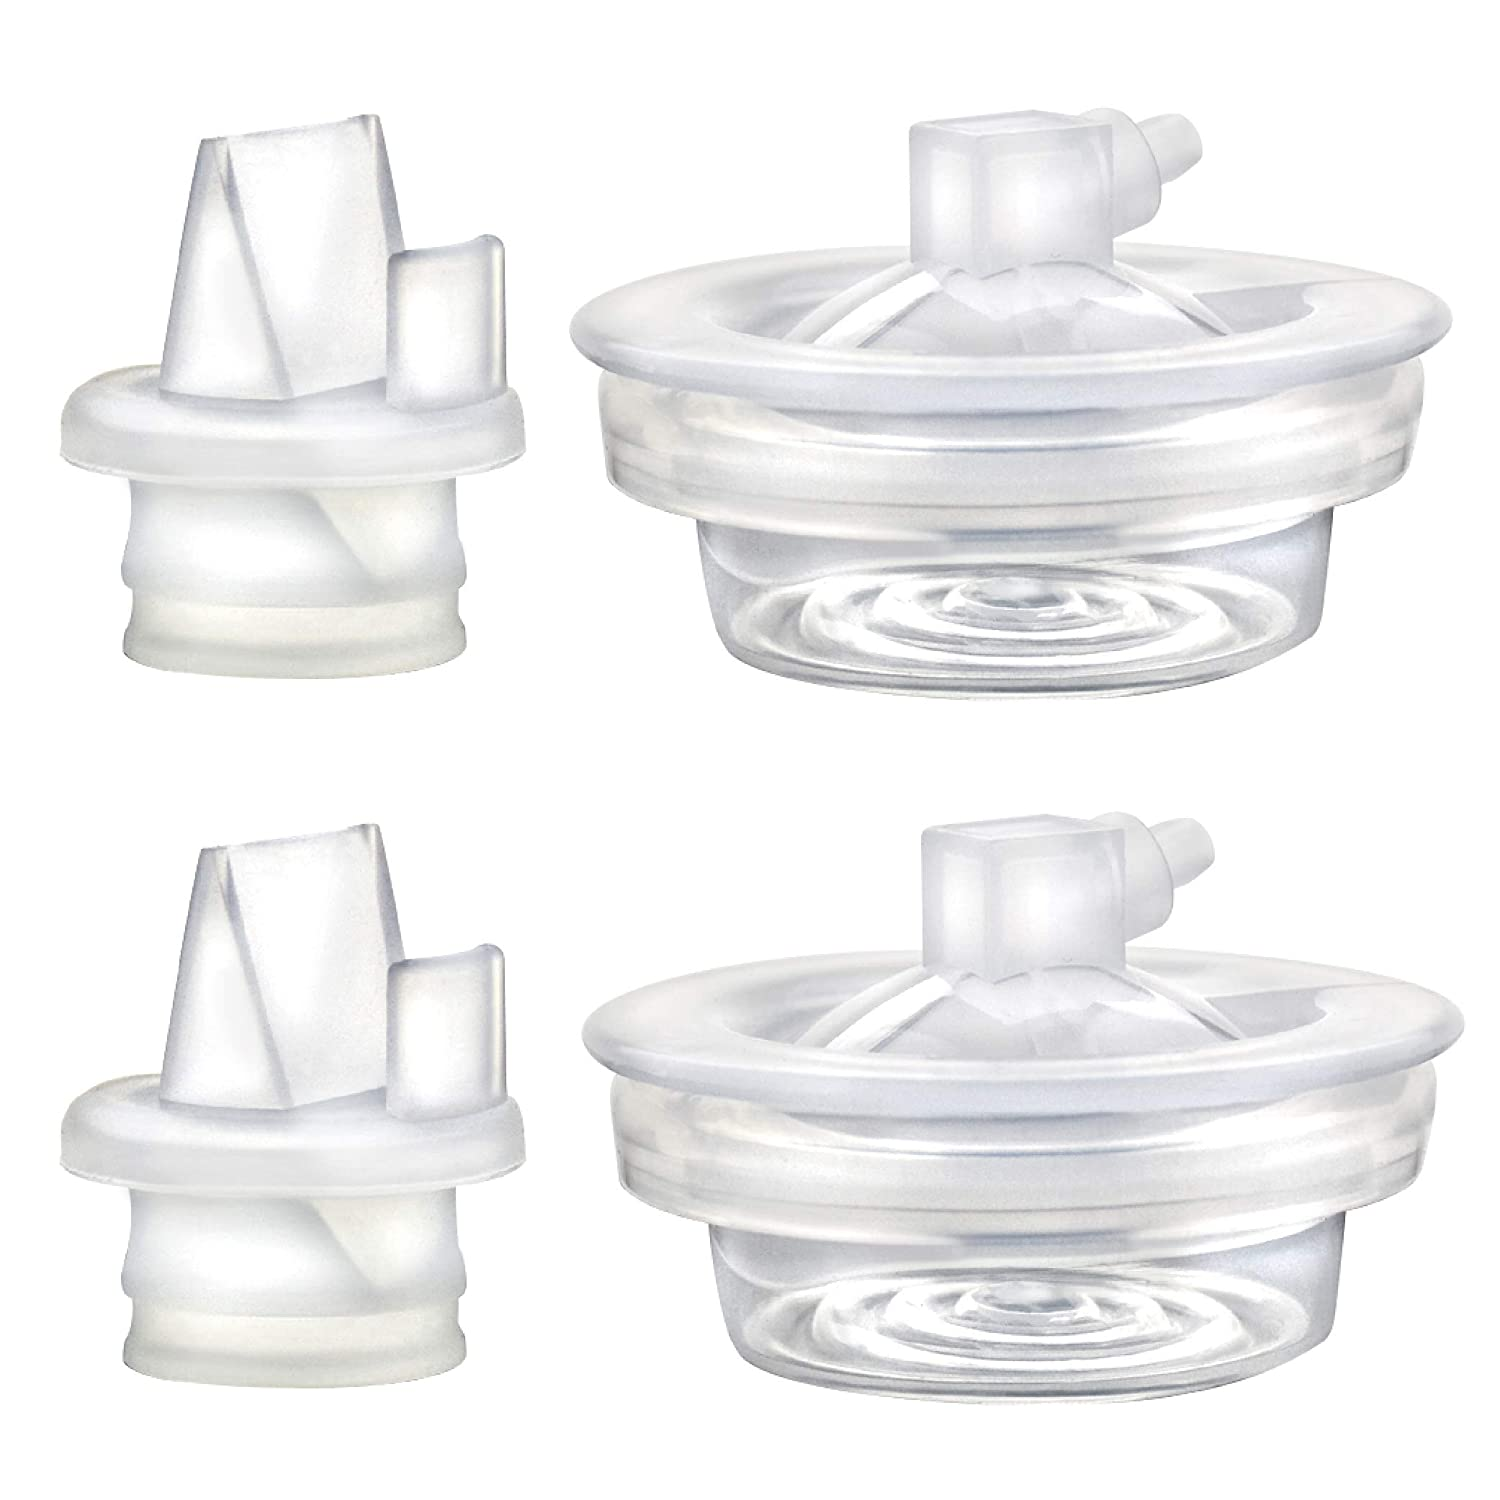 Replacement Parts for Avent Comfort Pump, Valve, Diaphragm for Single and Double Electric Pumps; Made by Maymom